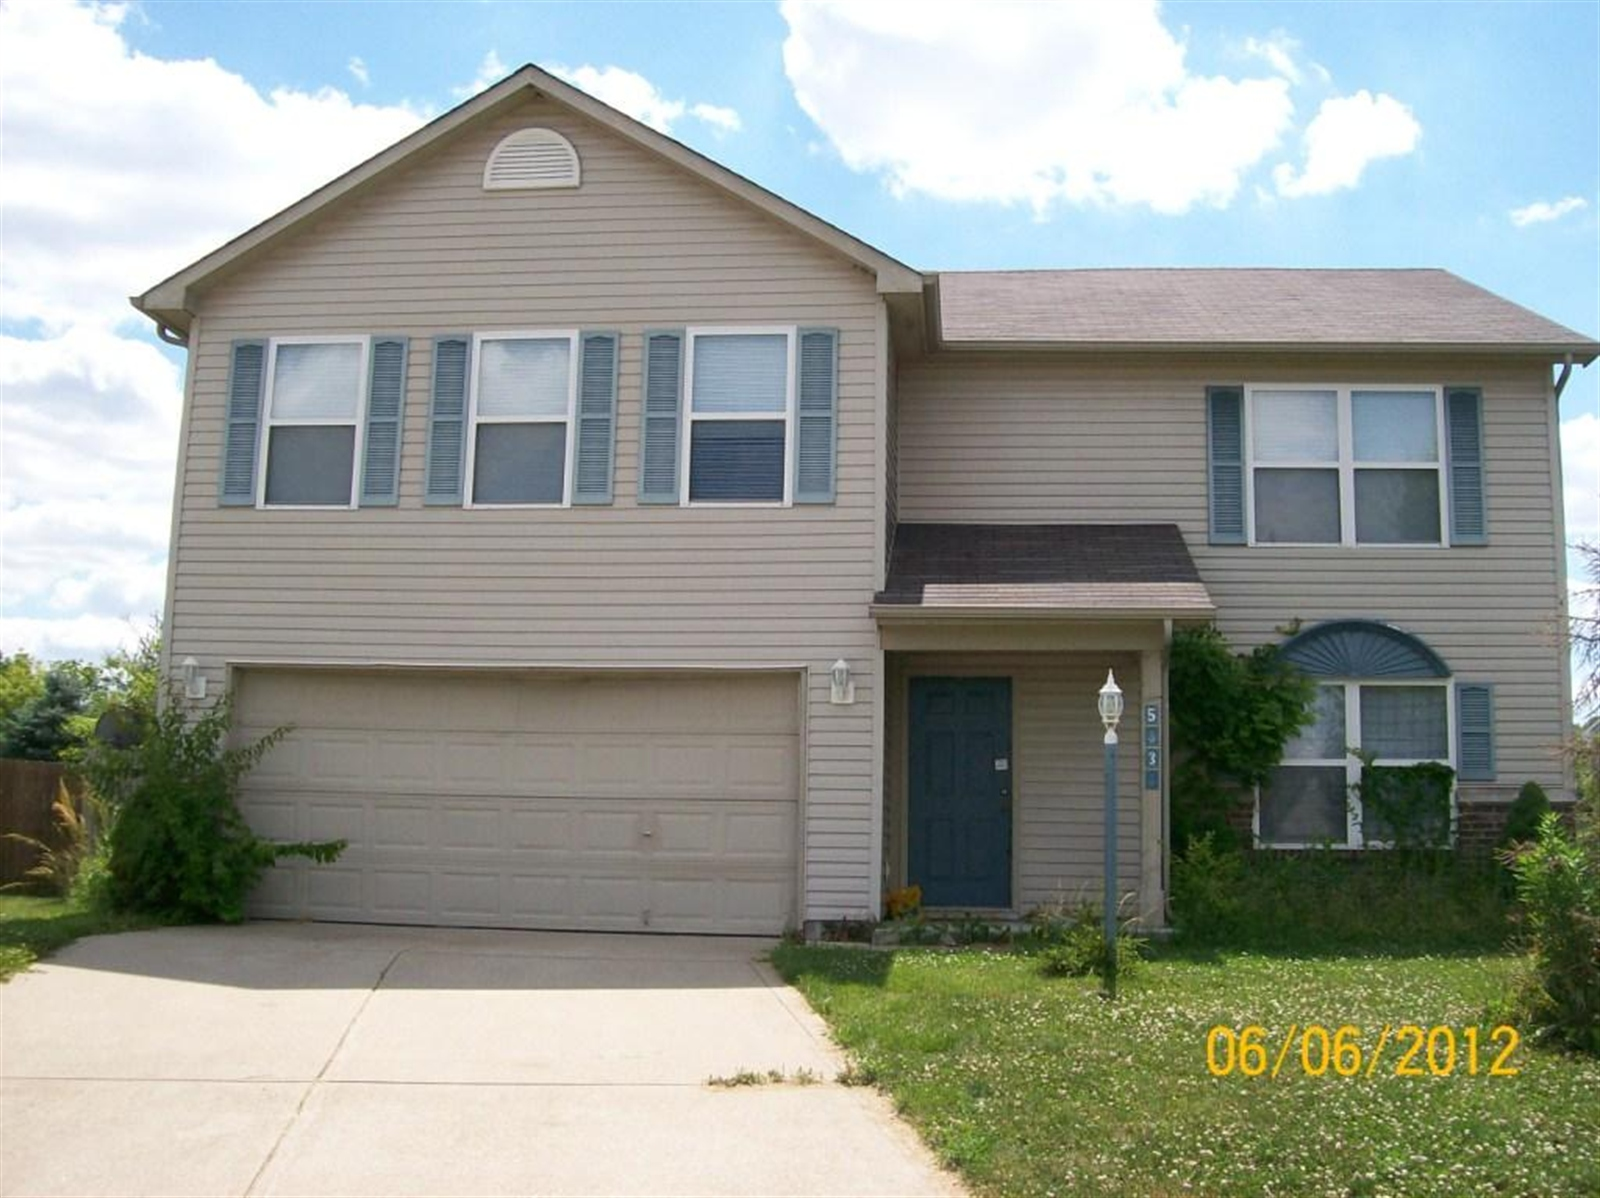 Real Estate Photography - 5838 Brambleberry Ct, Indianapolis, IN, 46239 - Location 1